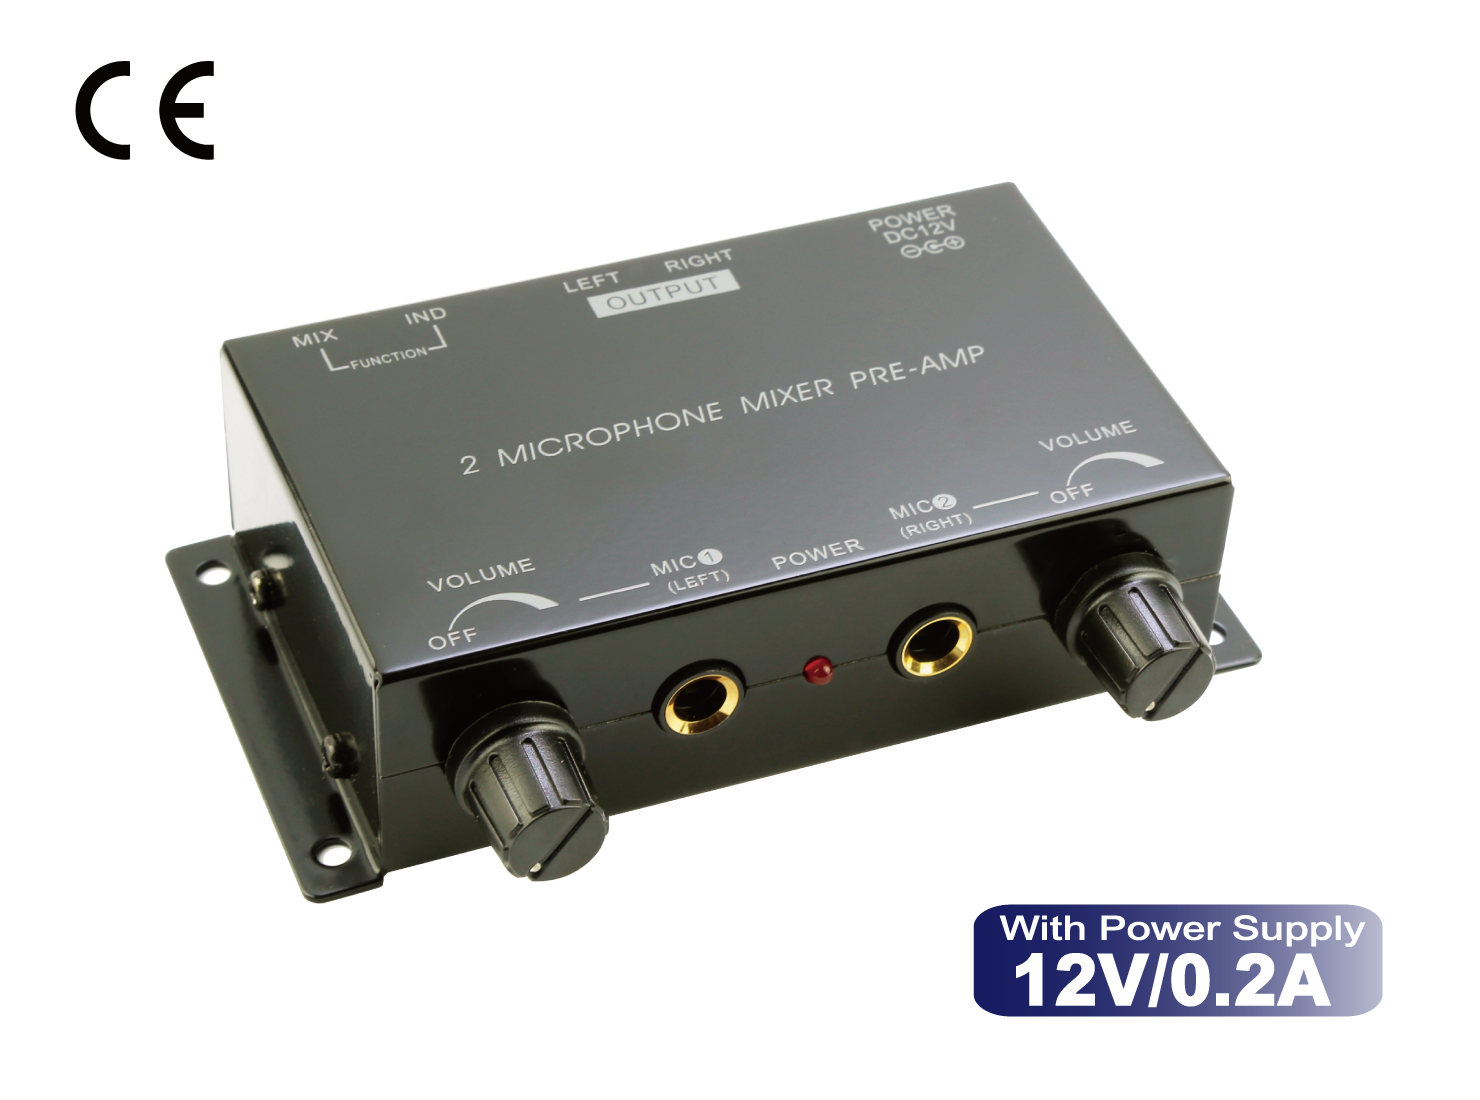 2-Microphone Mixer to AUX Preamplifier